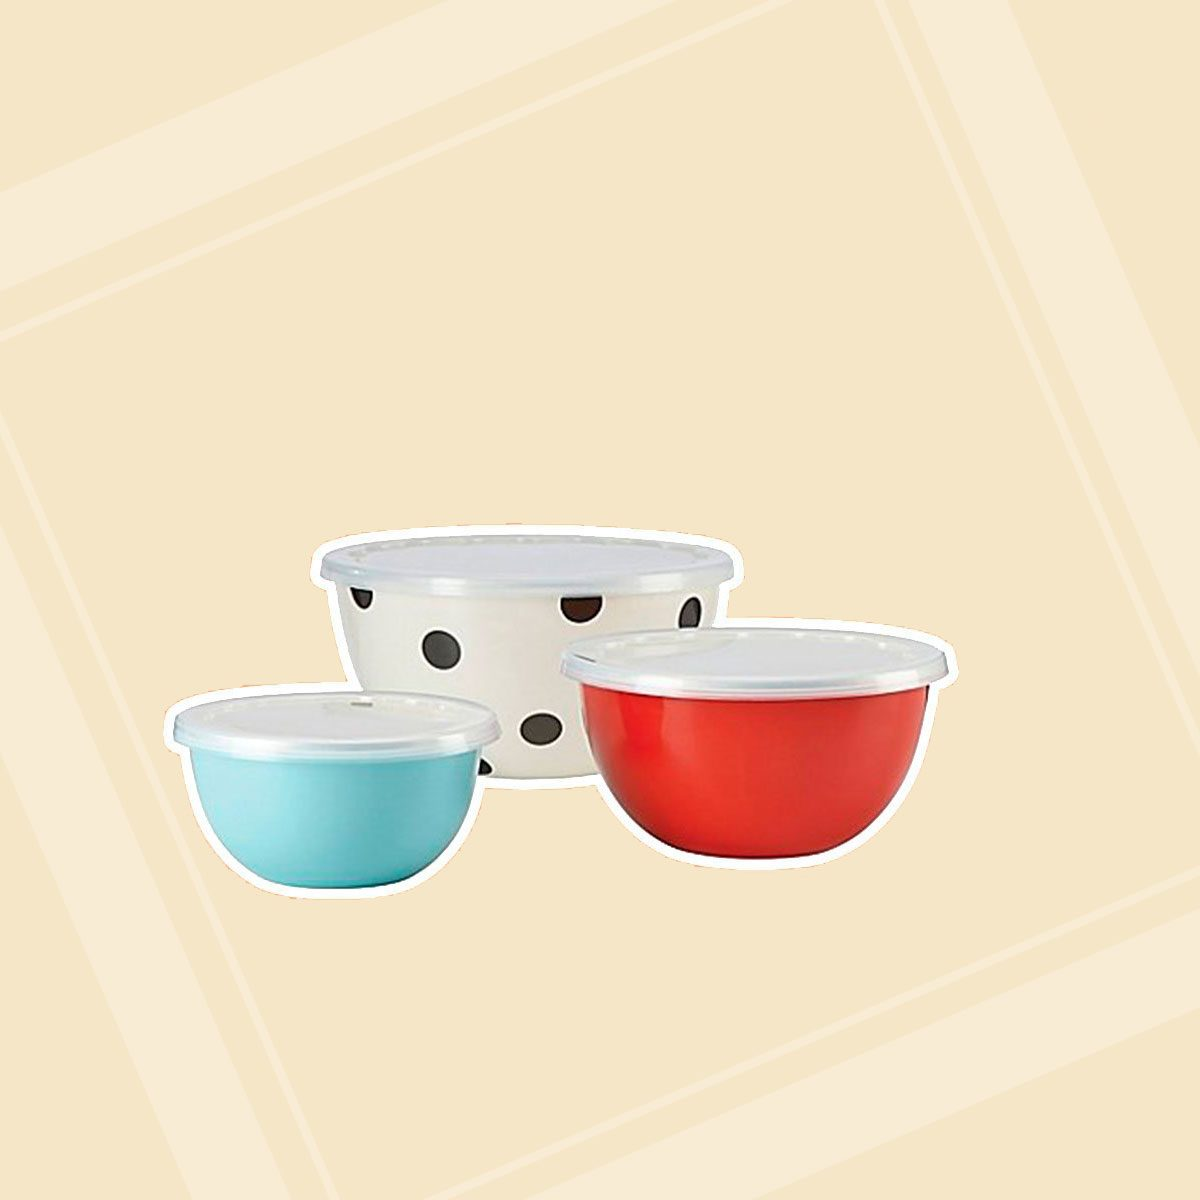 Kate Spade New York Serve and Store Bowls